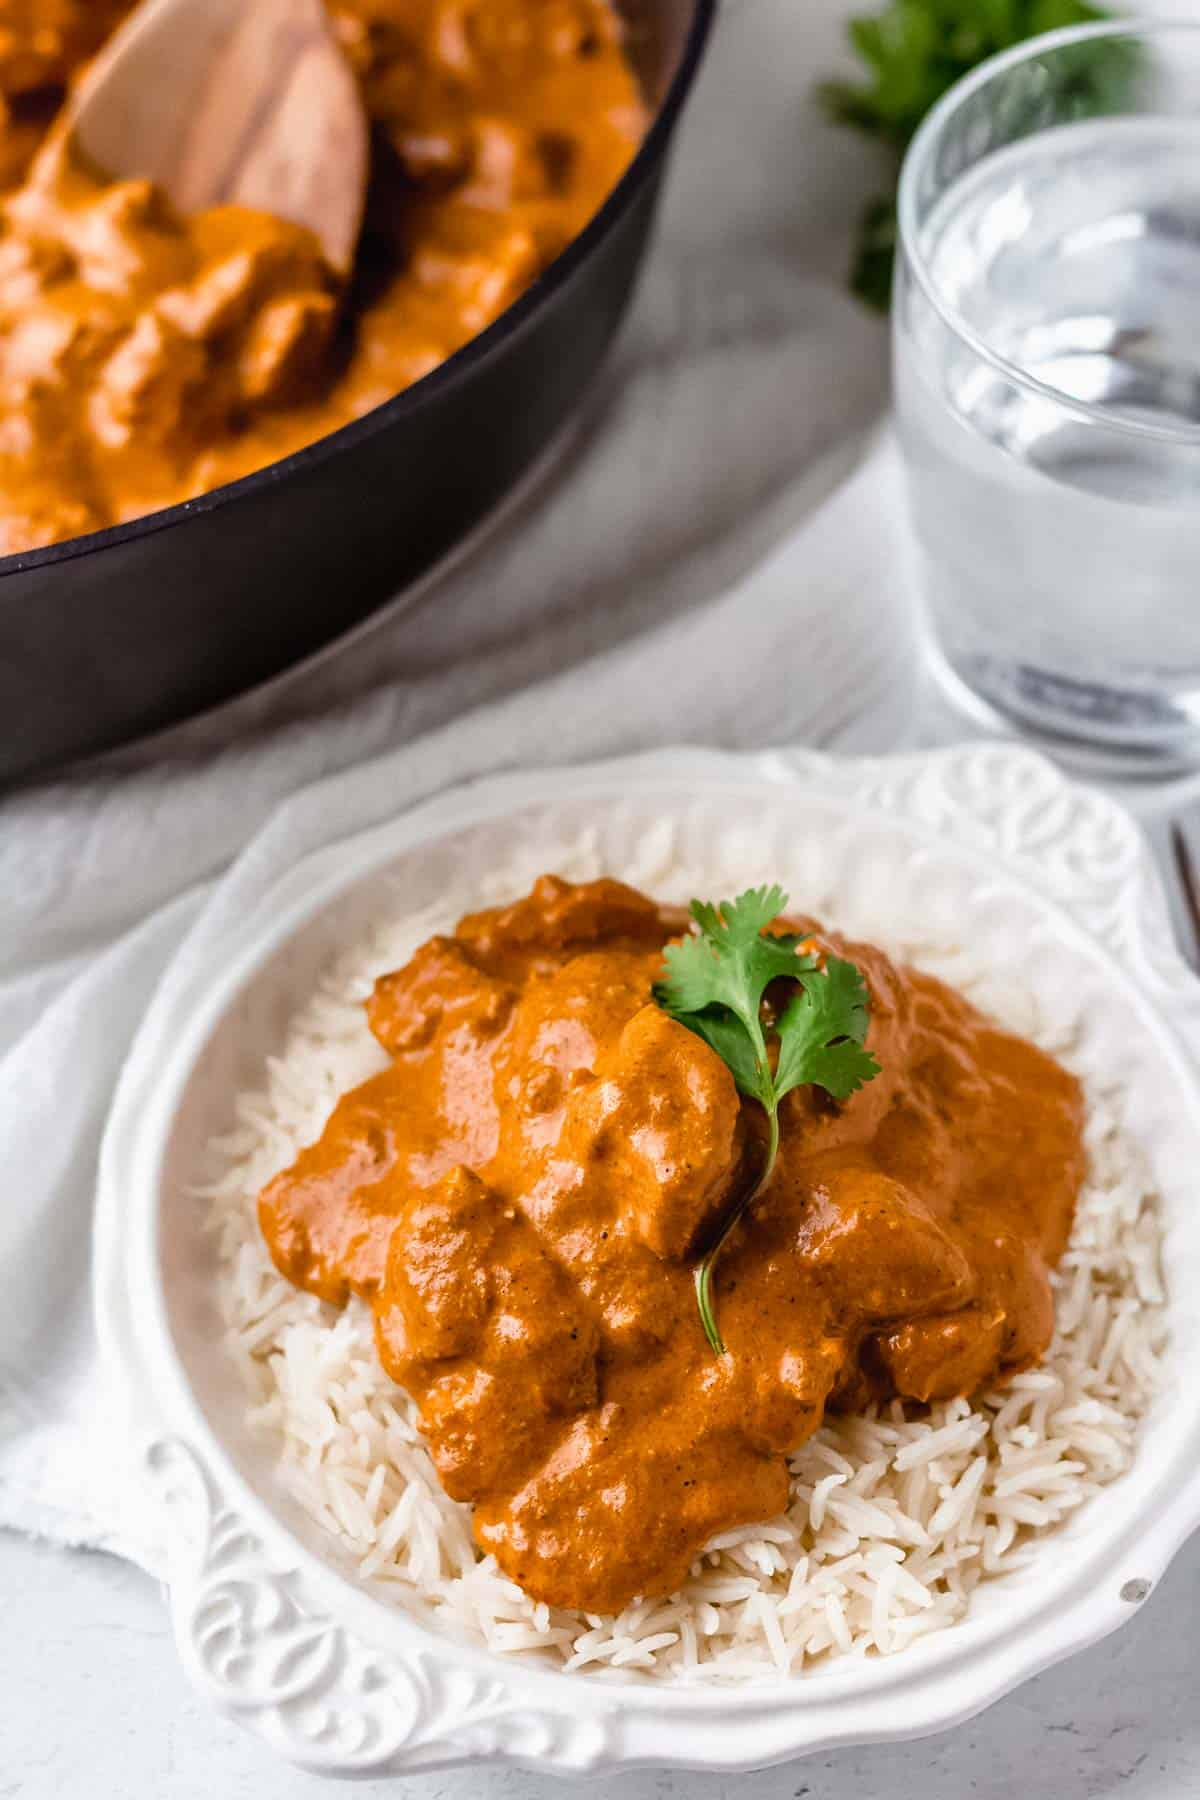 Butter chicken over rice in a white bowl with part of a black pan showing with more butter chicken and a wood spoon inside of it and a glass of water and cilantro next to it